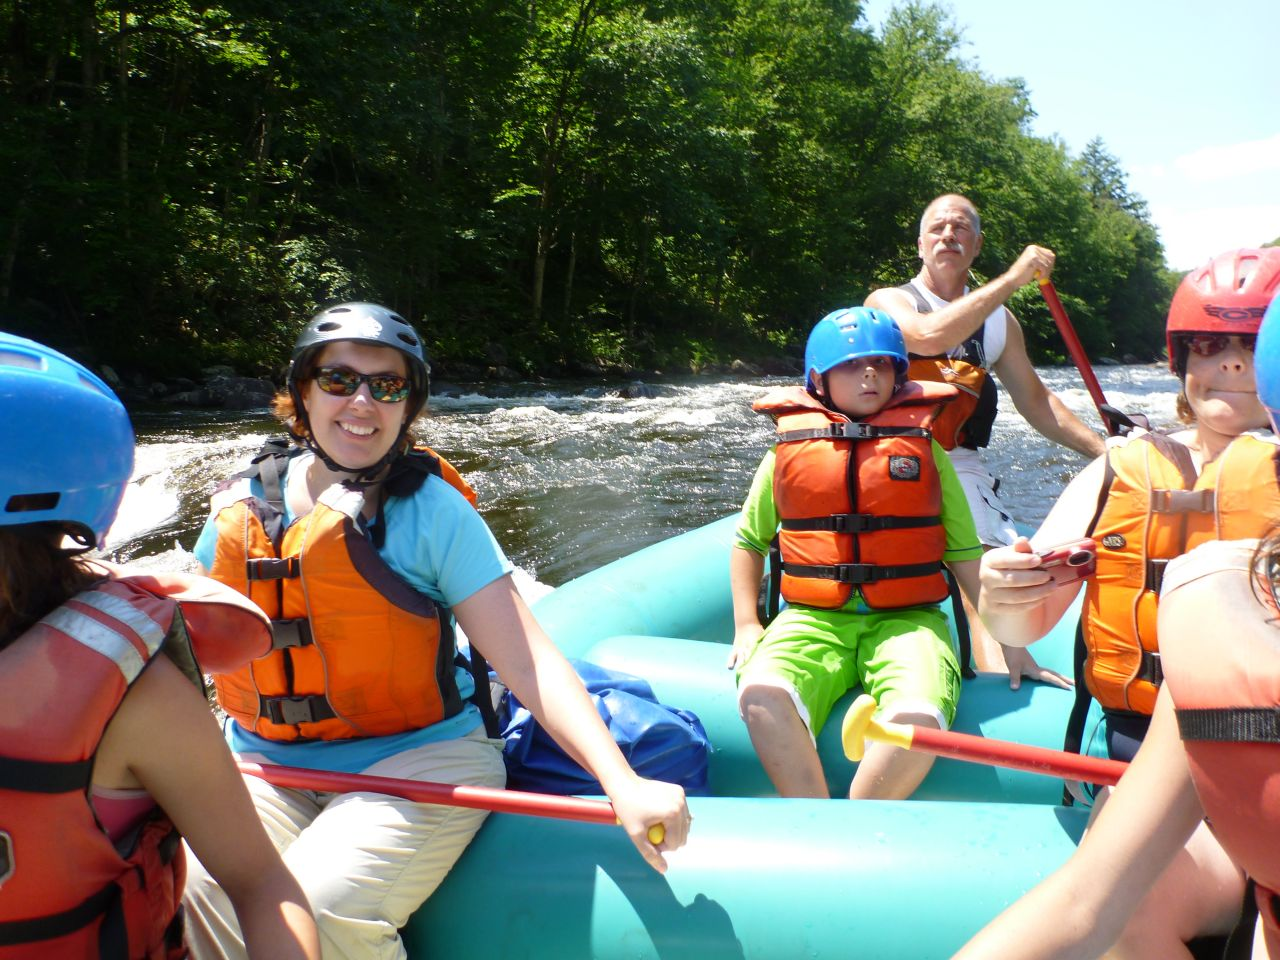 White Water Rafting In The Adirondacks